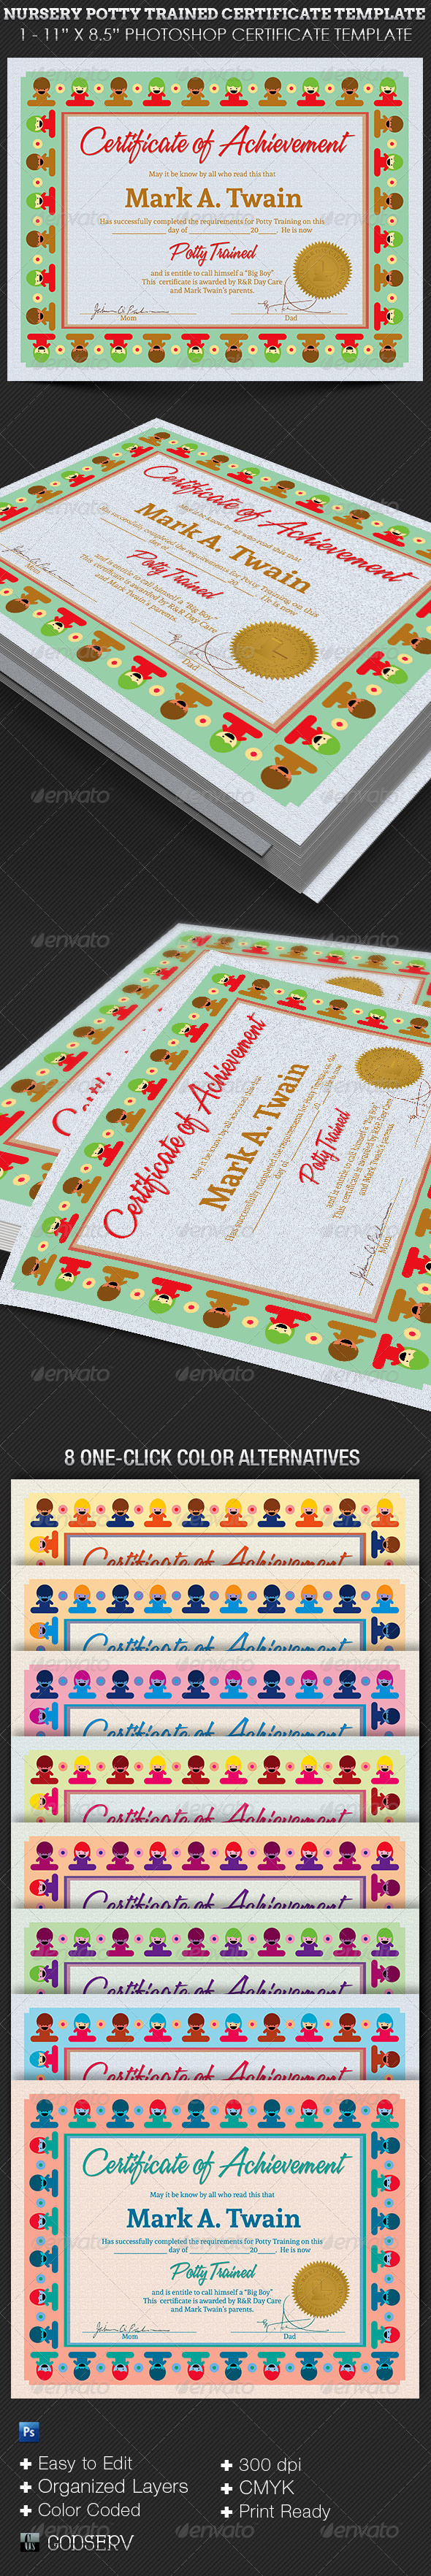 GraphicRiver Nursery Potty Trained Certificate Template 6442544